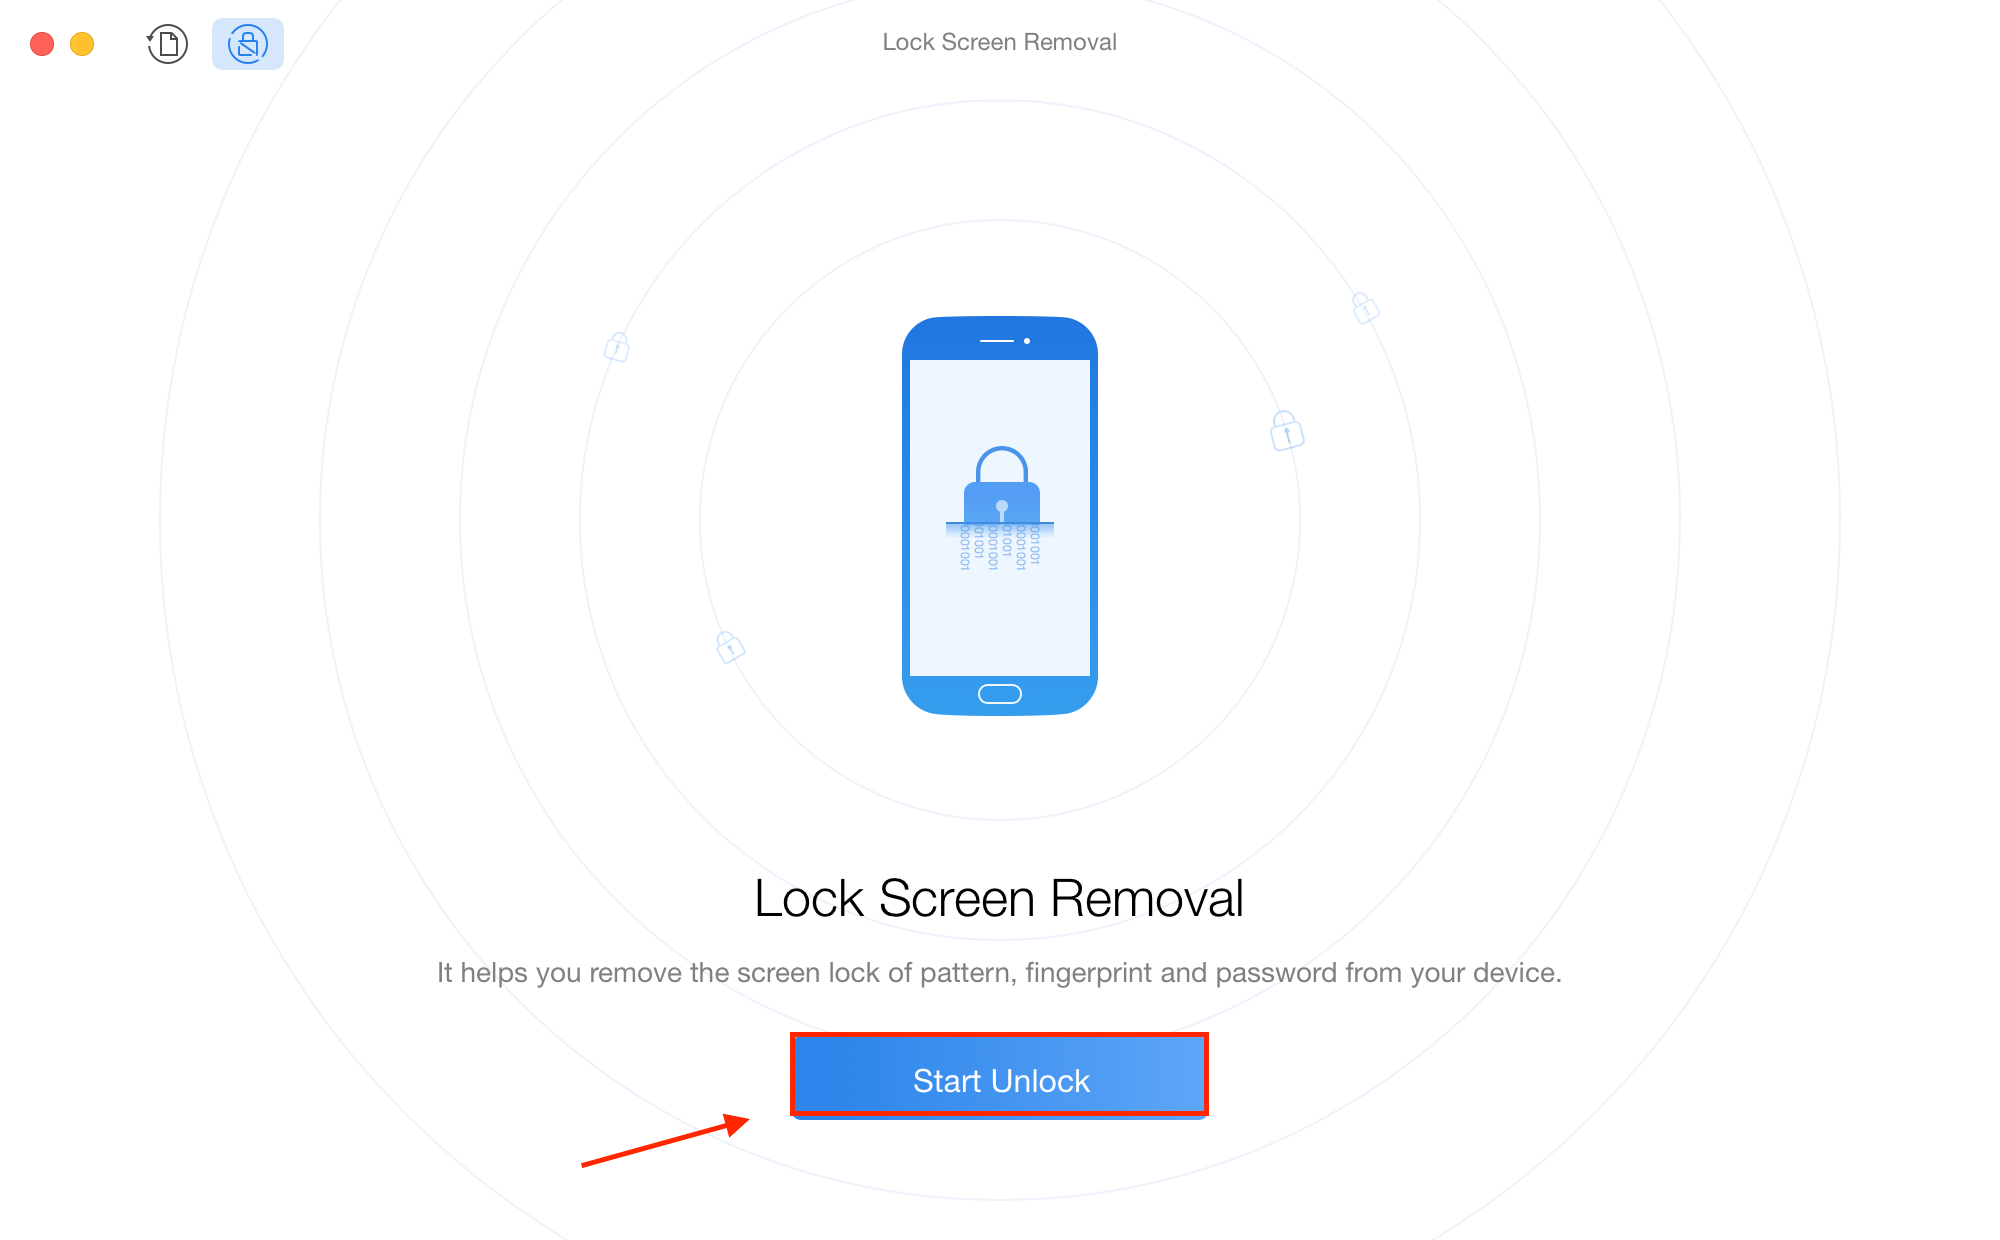 How to Remove Screen Lock on Android - Step 2